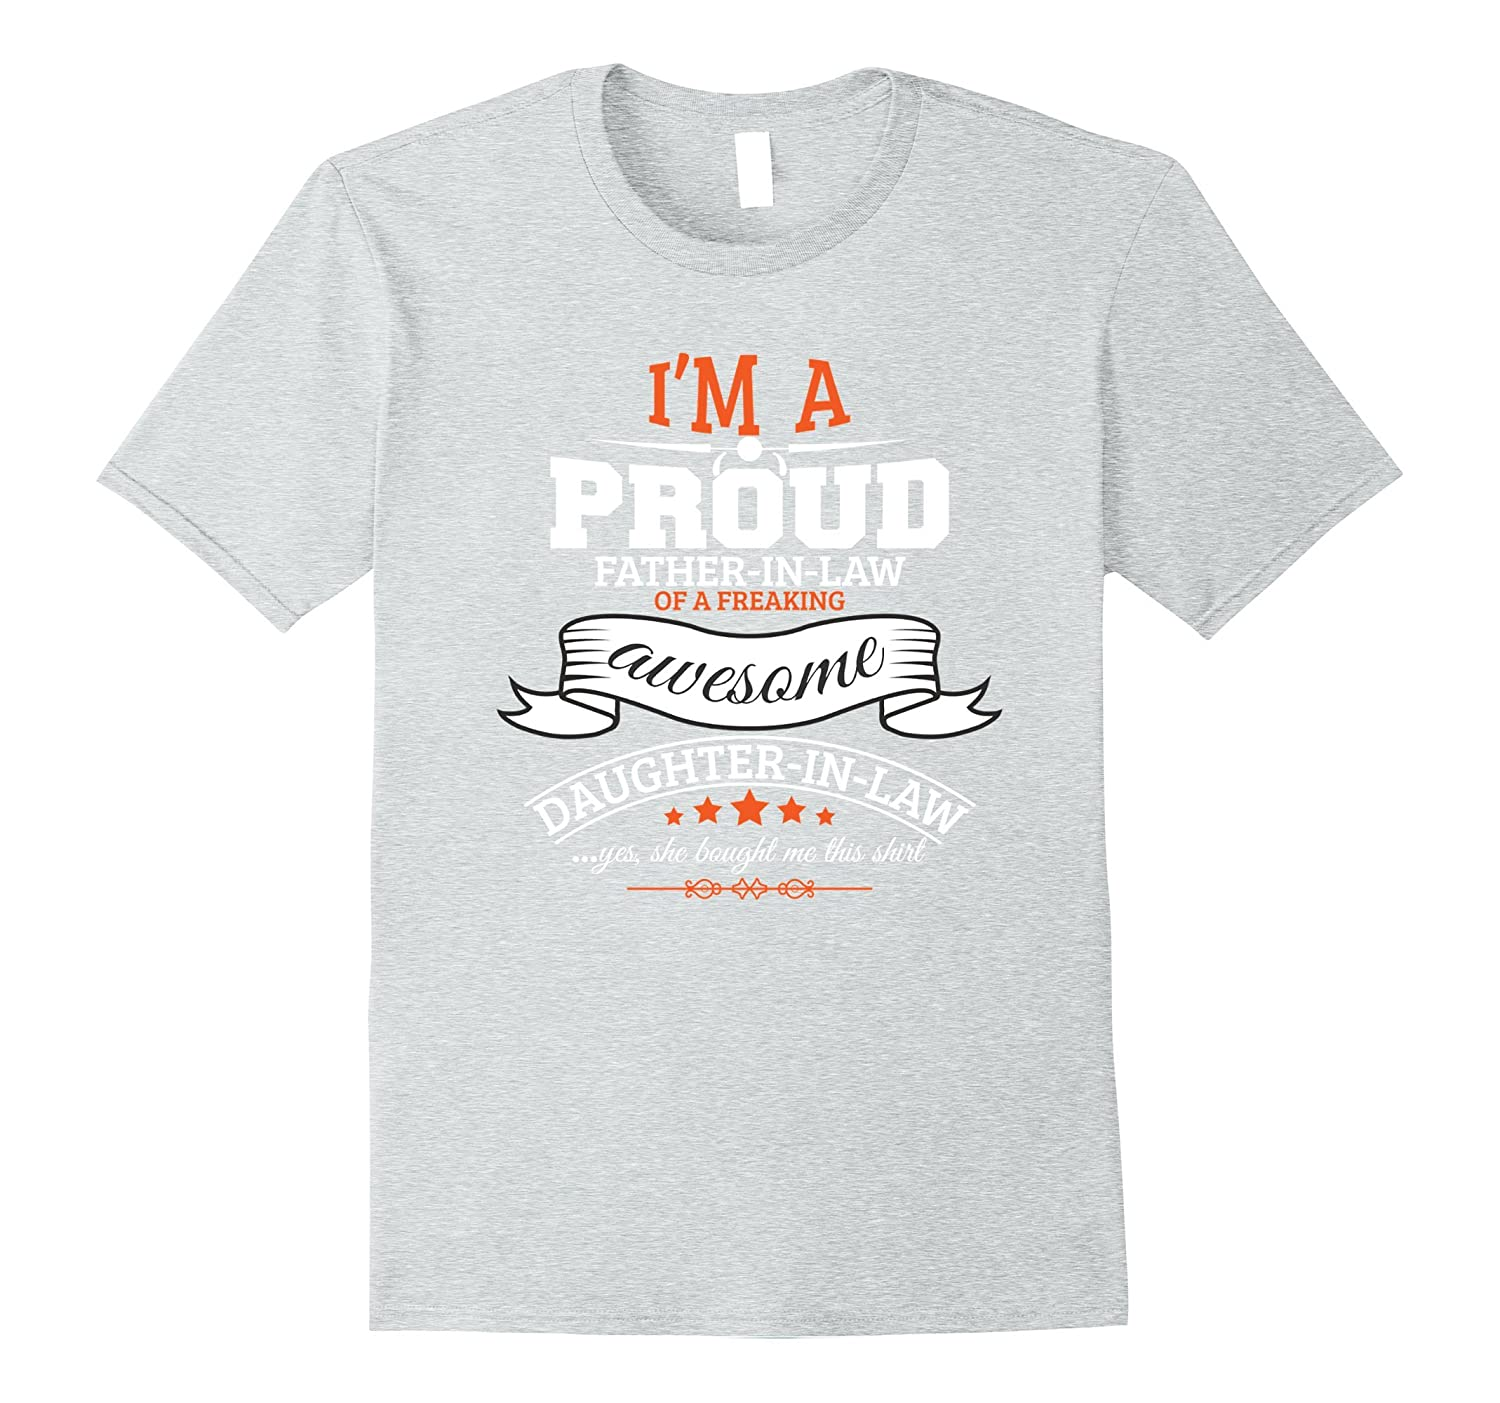 I'm A Proud Father-In-Law Awesome Daughter-In-Law T-Shirt